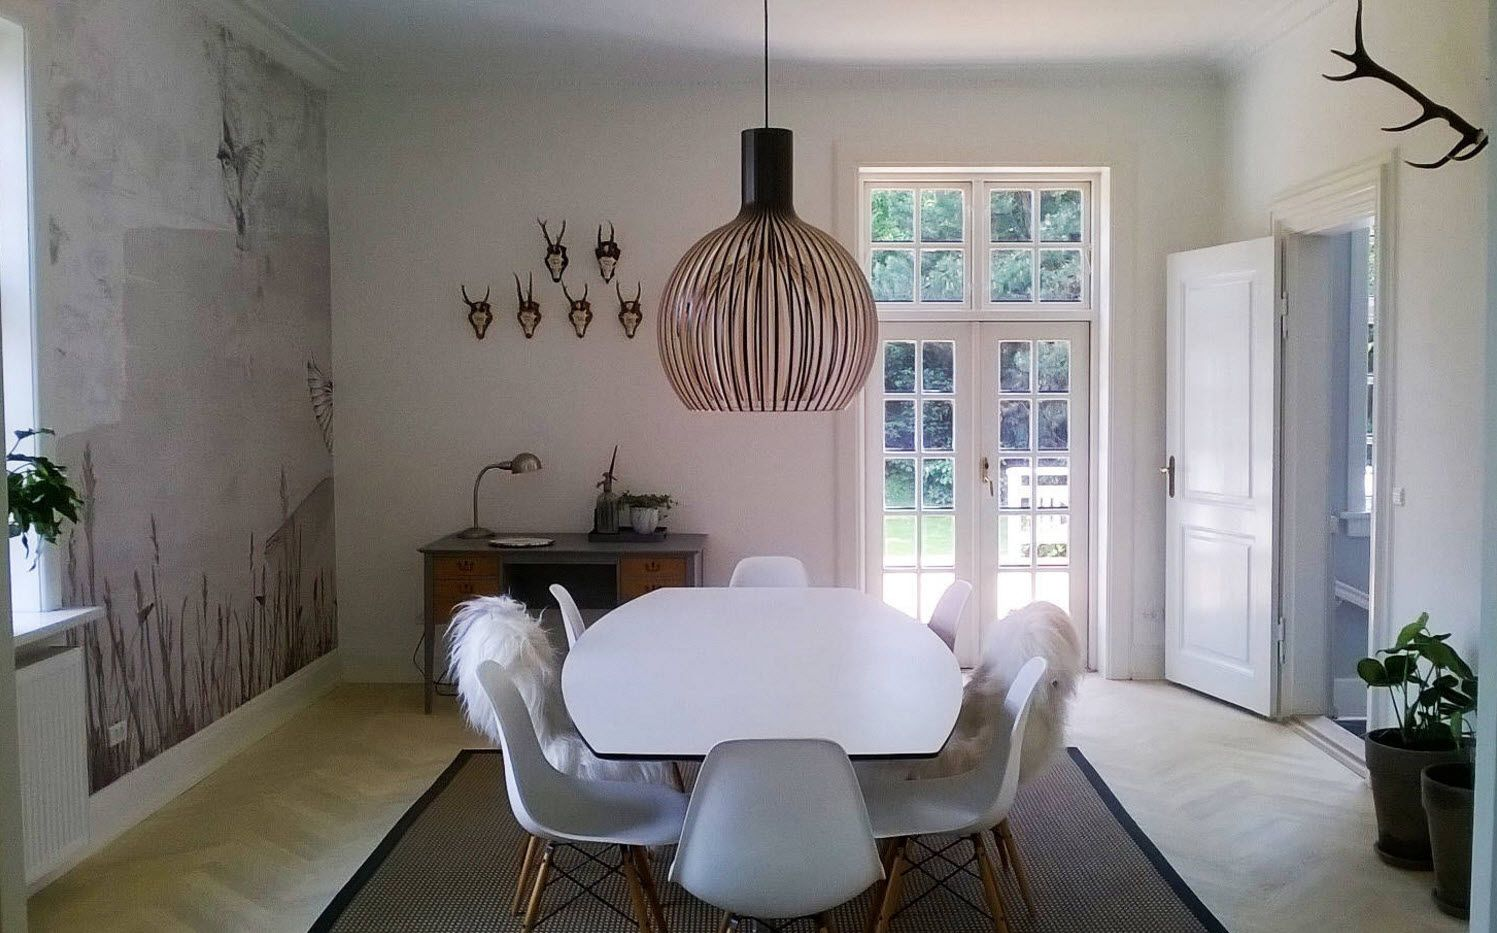 Modern Cottage Interior Design Tips. Trends and Features 2017. Dining room at the first floor with plastic furniture